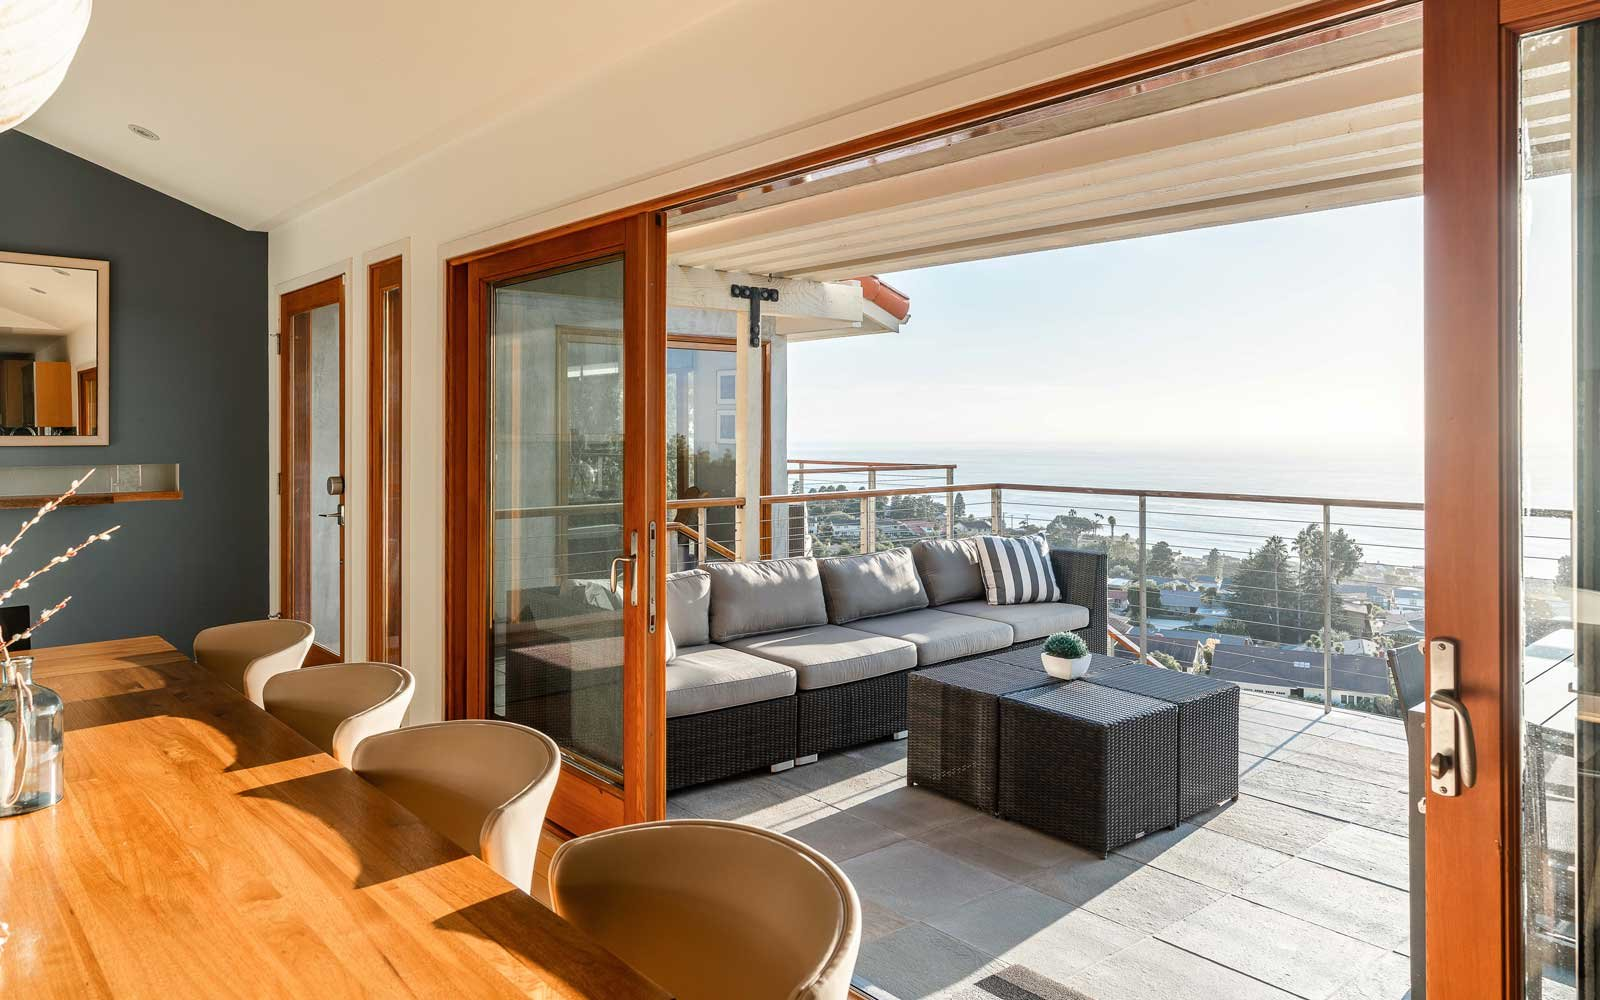 California coast vacation home with view of ocean